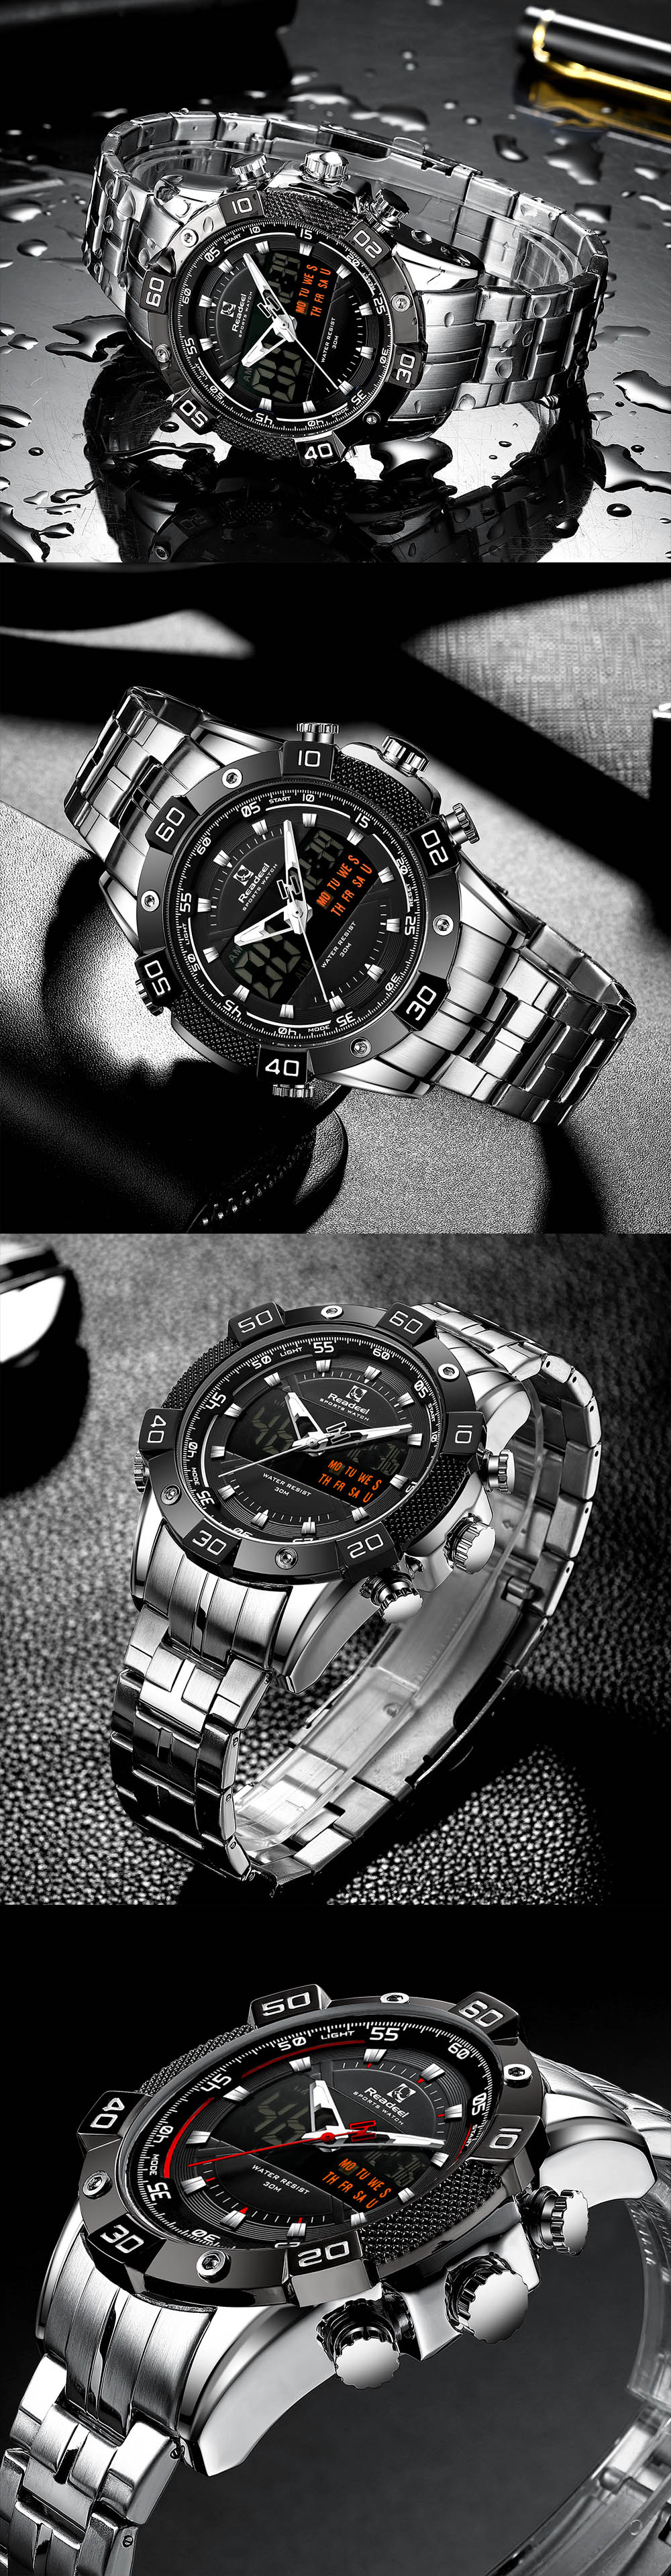 Hb6b73332ba1c4197a49692cb61f22302q 2020 Luxury Brand Waterproof Military Sport Watches Men Silver Steel Digital Quartz Analog Watch Clock Relogios Masculinos